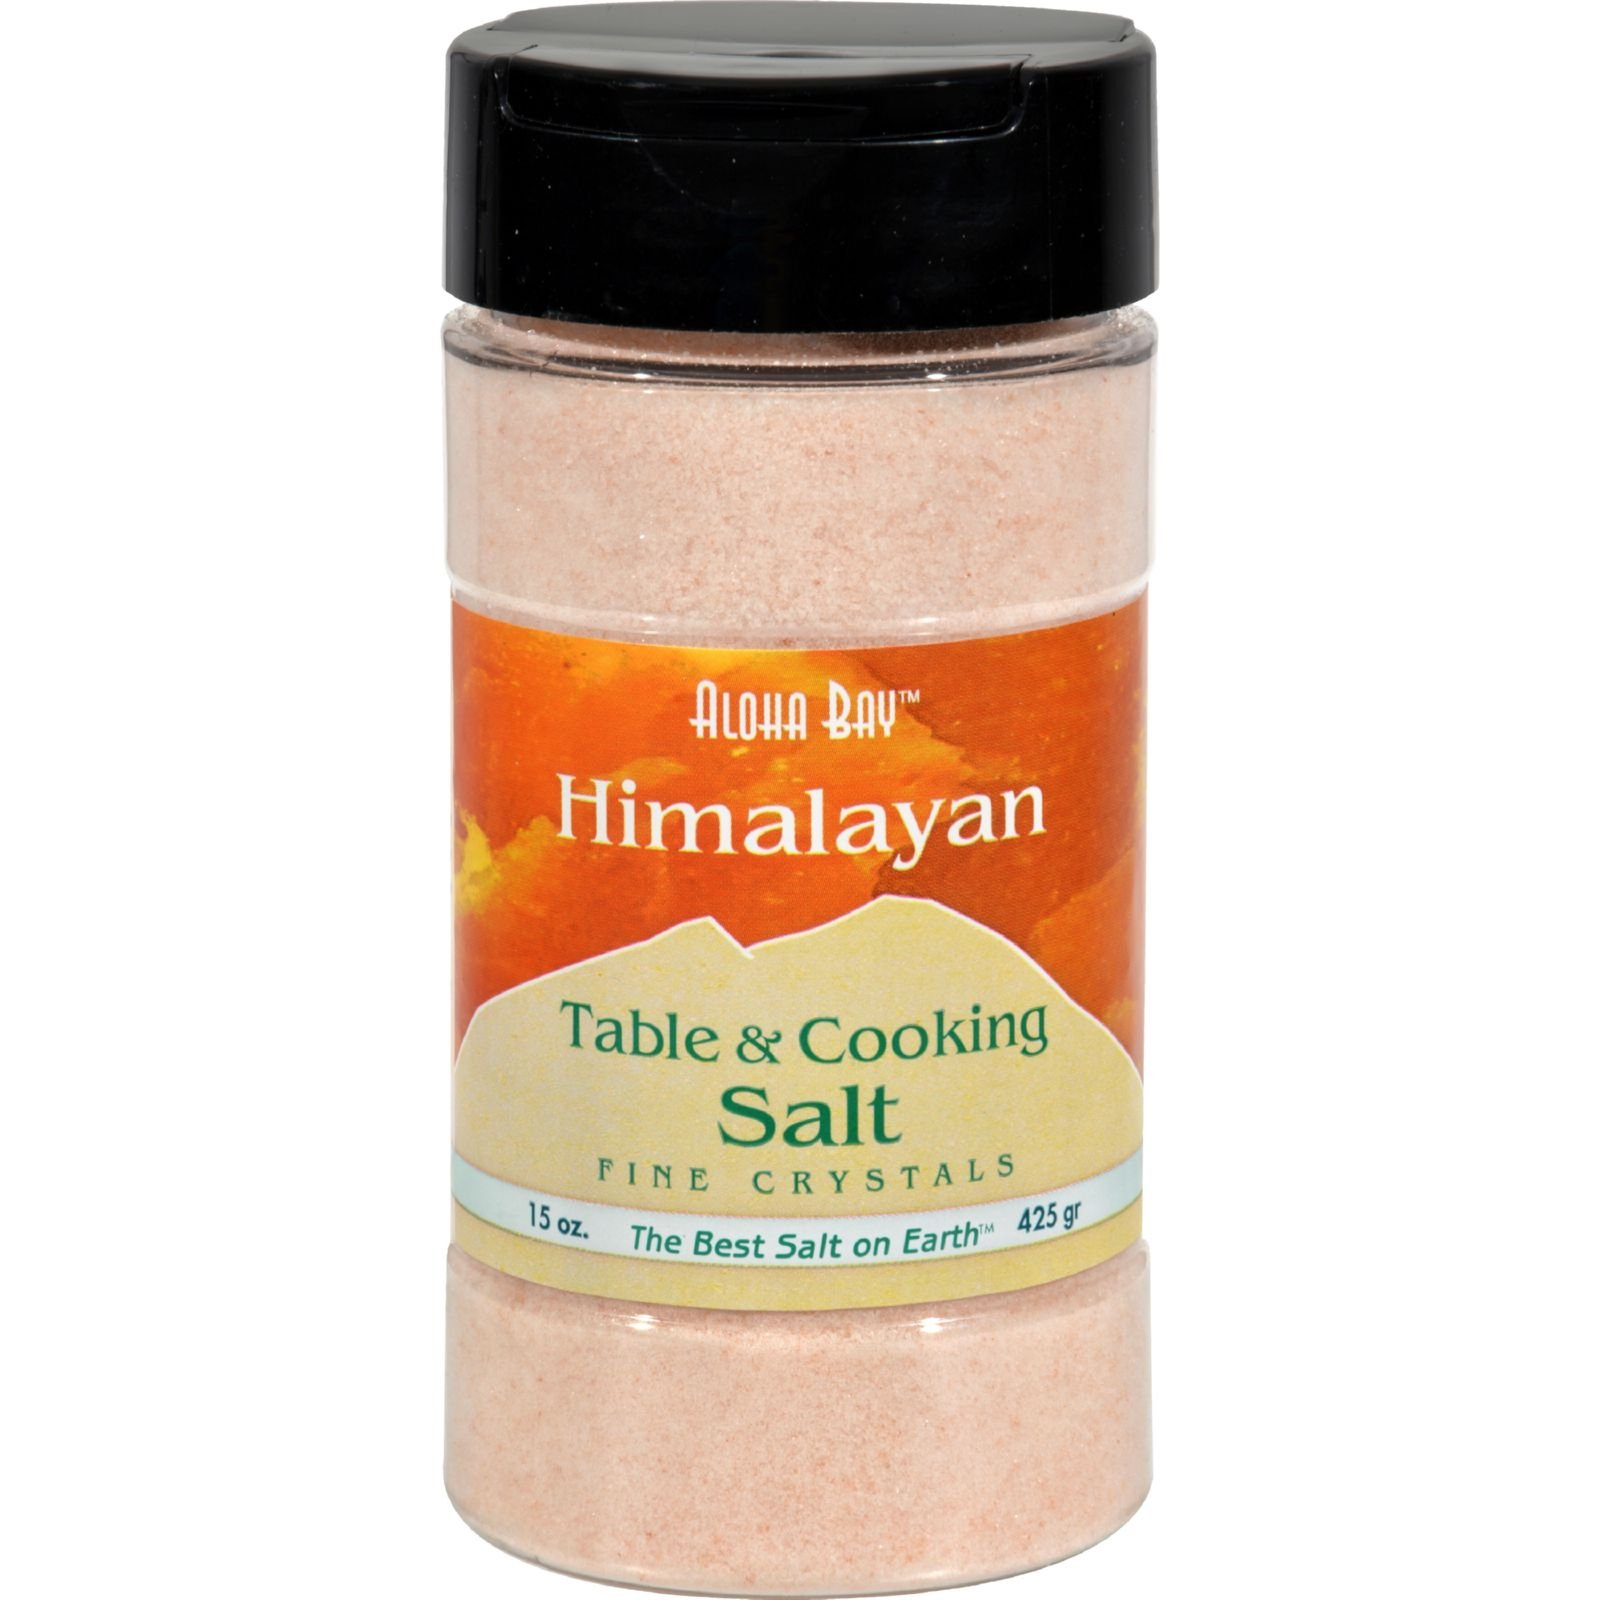 Himalayan Table And Cooking Salt Fine Crystals - 15 oz - Free Of Additives